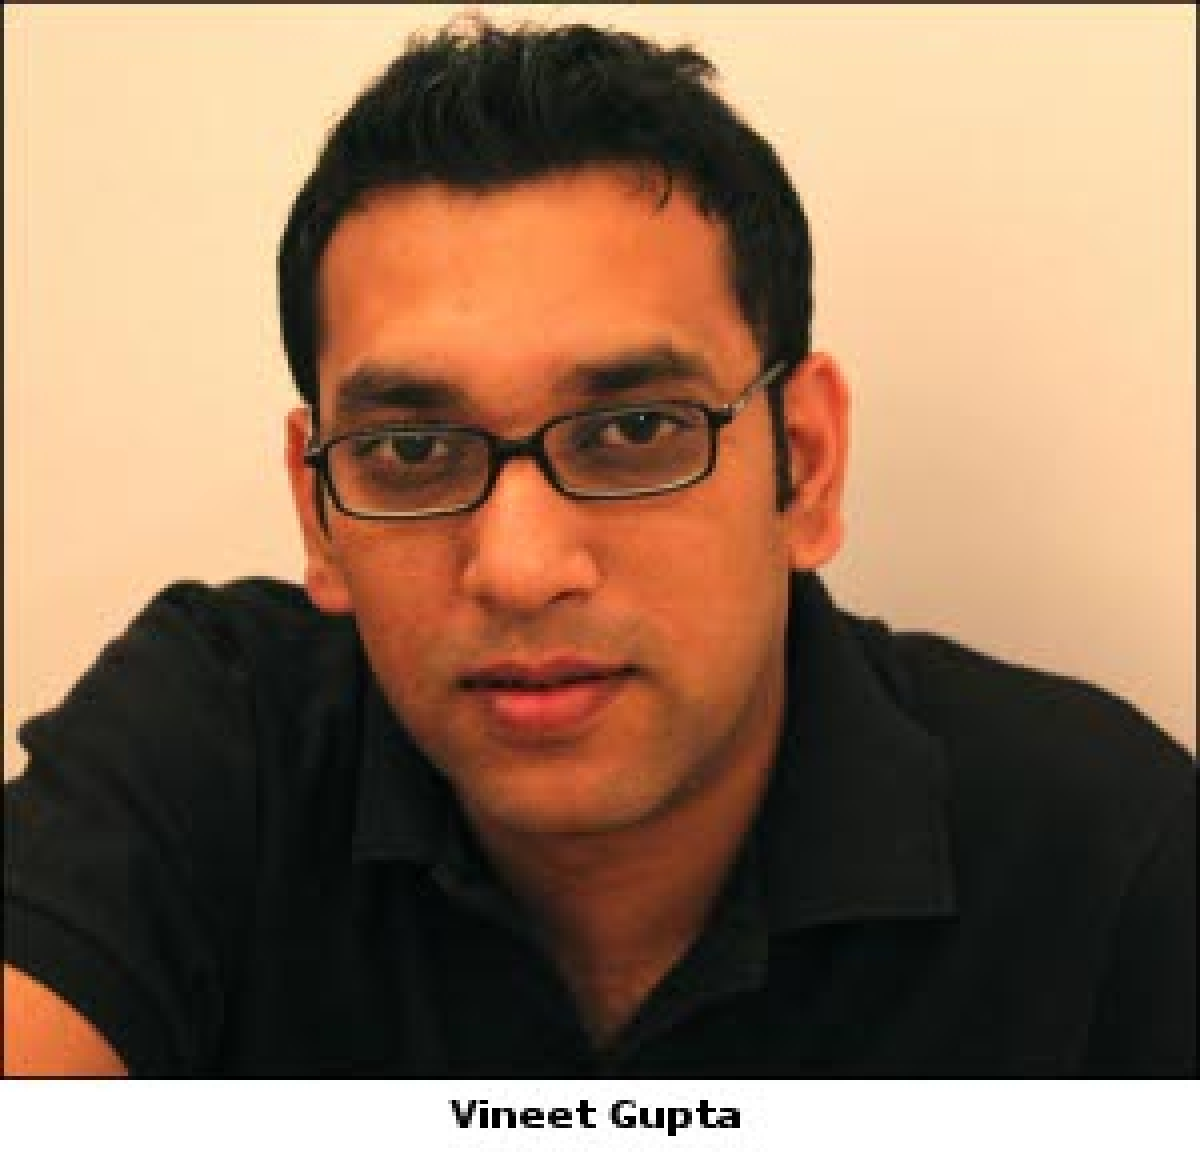 DDB Mudra Group appoints Ignite Mudra's Gour Gupta as executive director and CEO